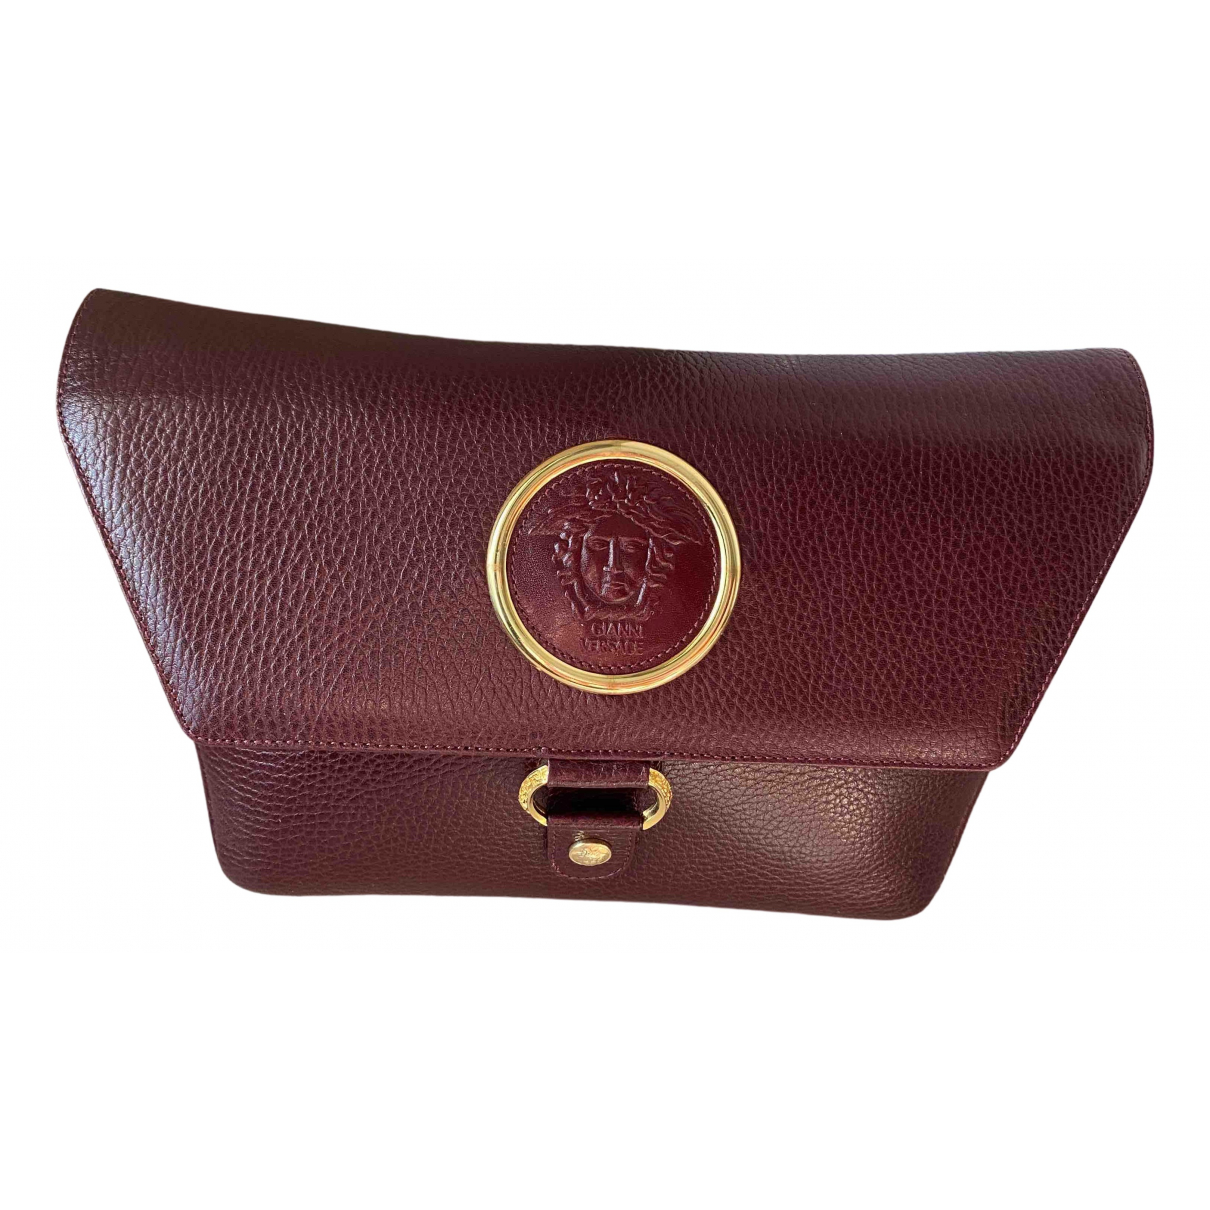 Gianni Versace \N Burgundy Leather handbag for Women \N